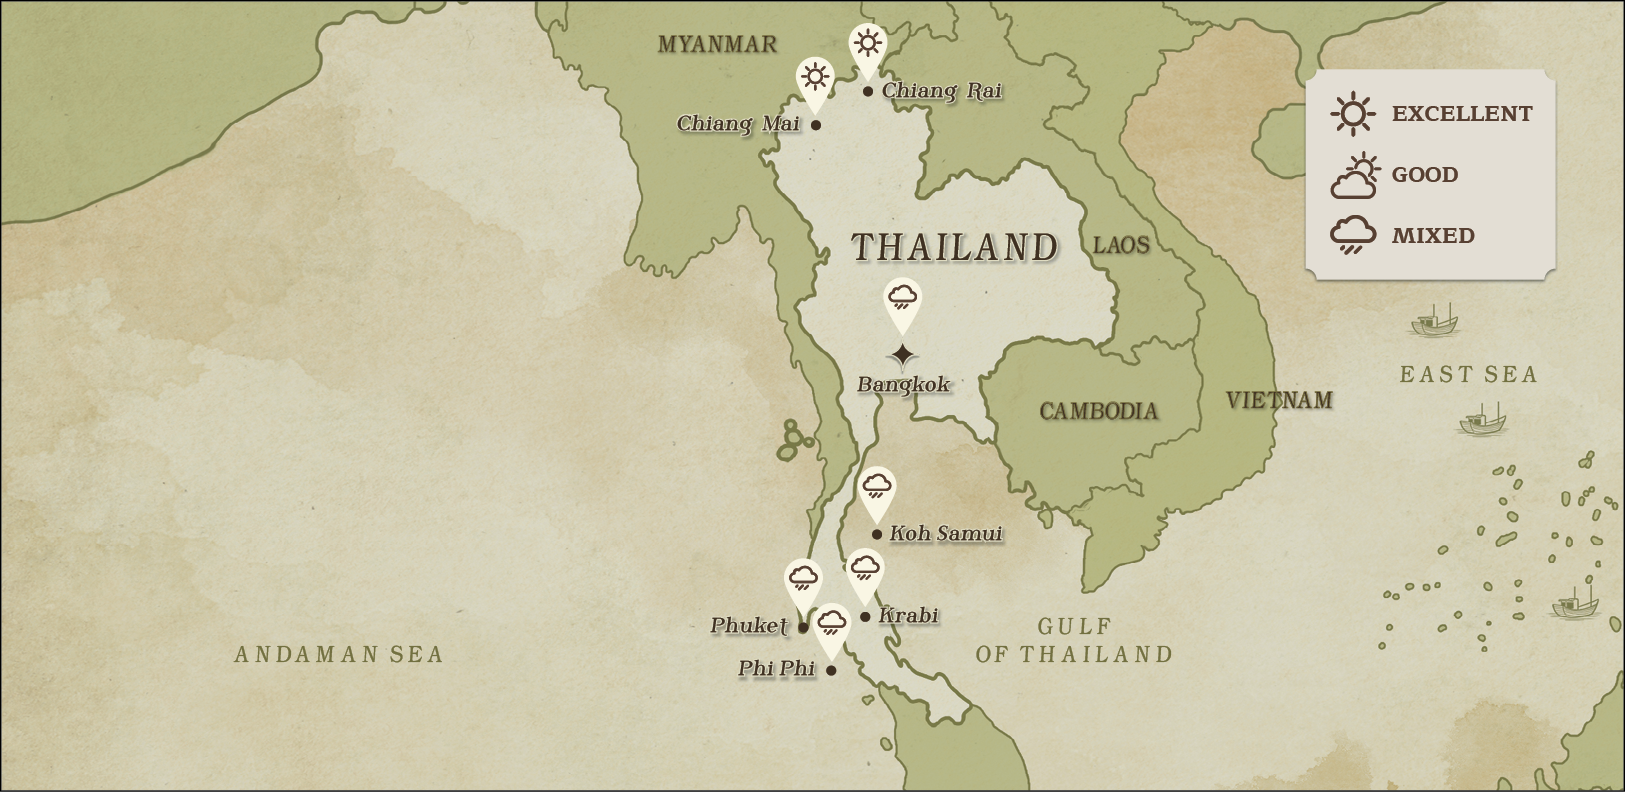 THAILAND WEATHER MAP October